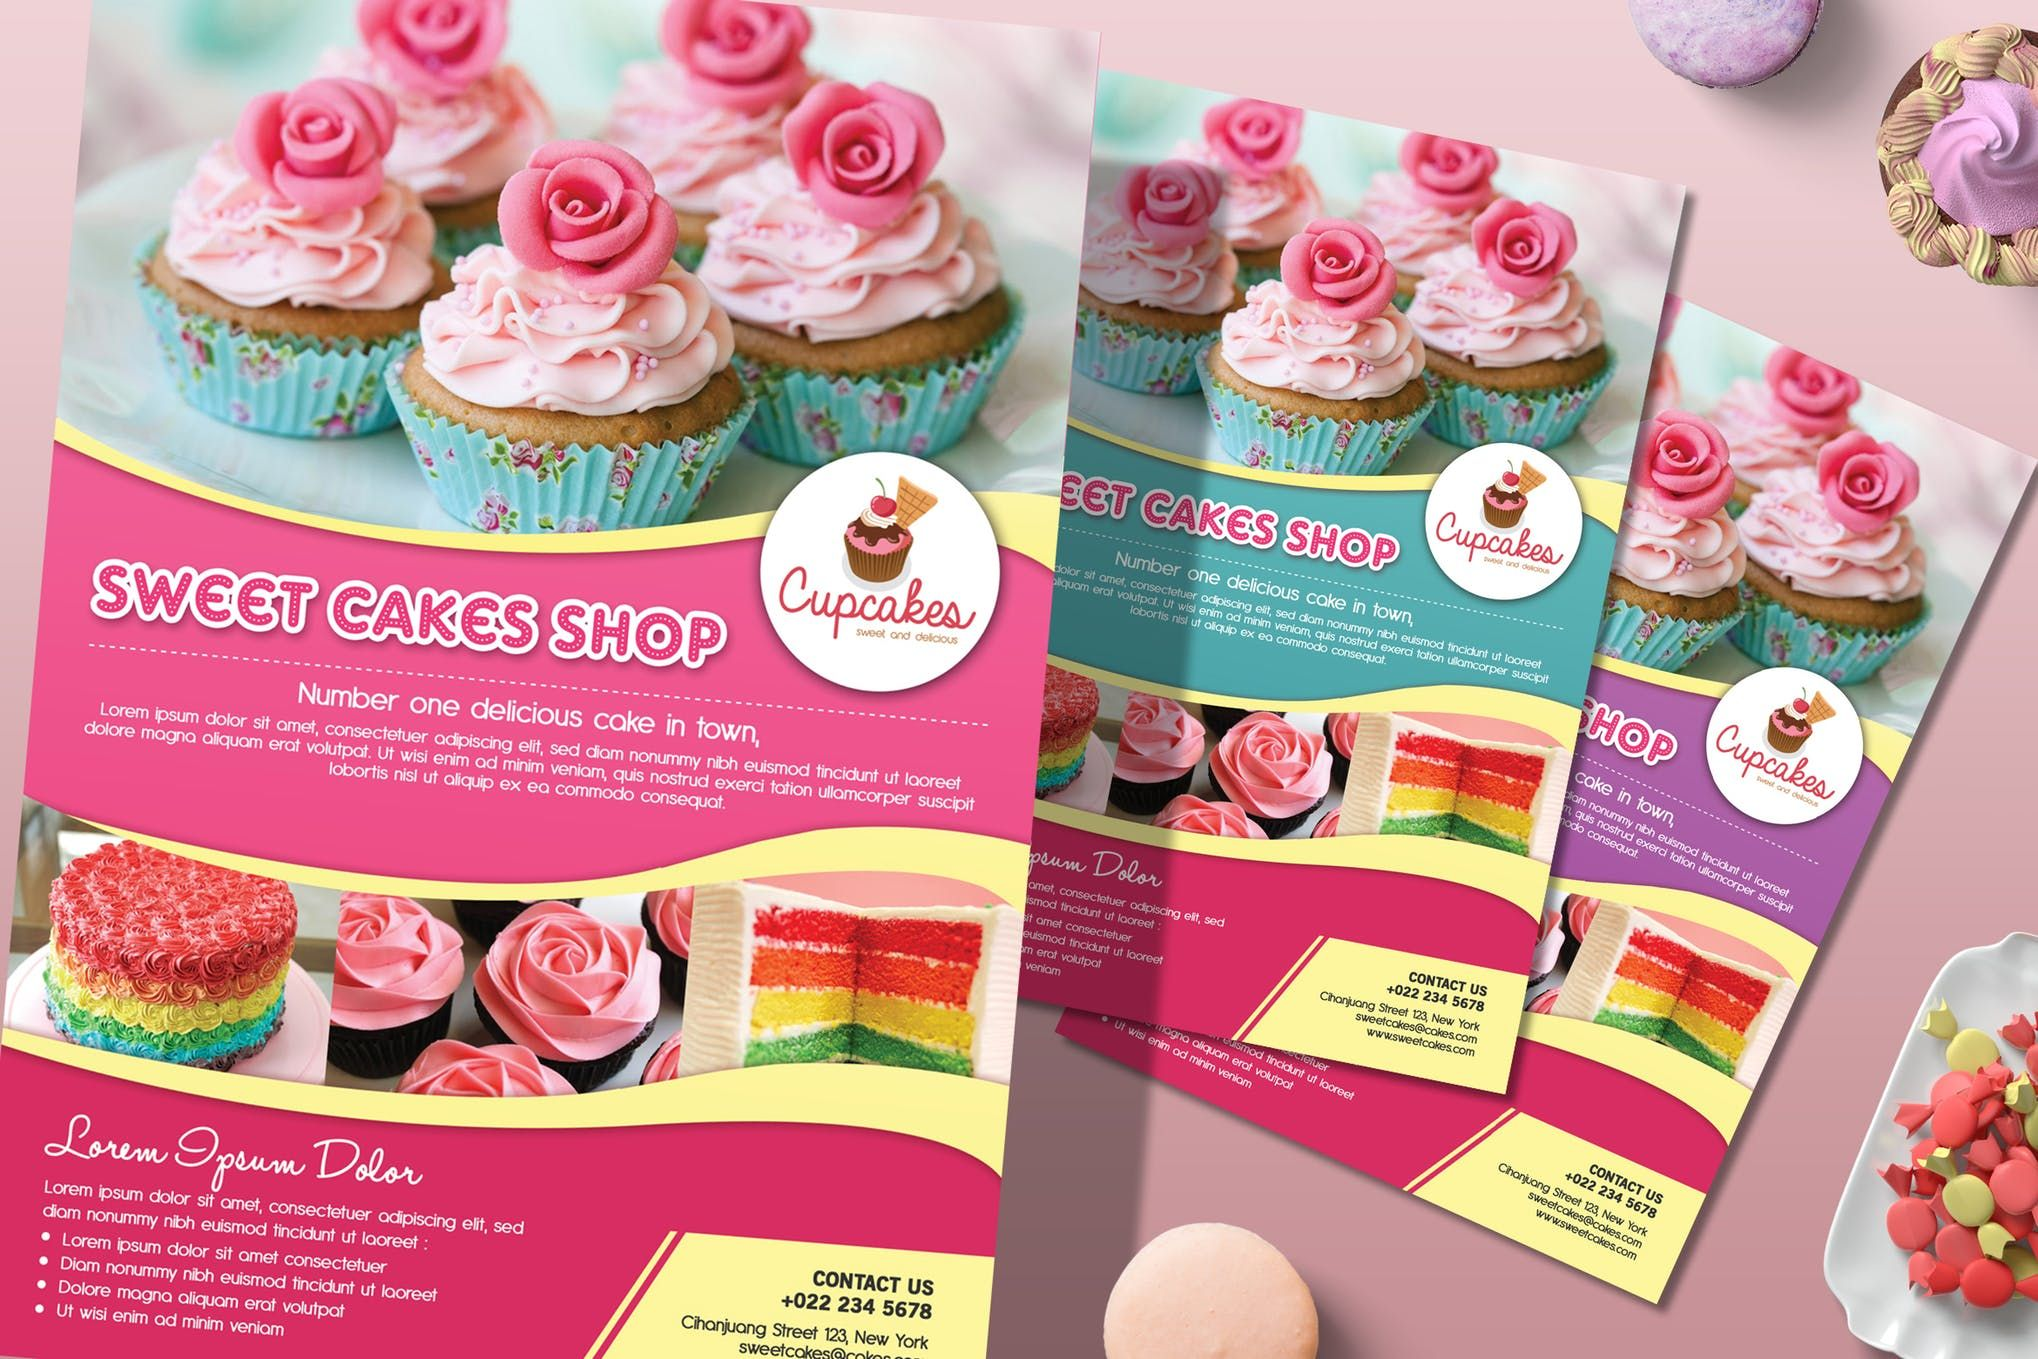 Cake Flyer / Magazine Ad Template PSD in 2020 | Bake sale ...